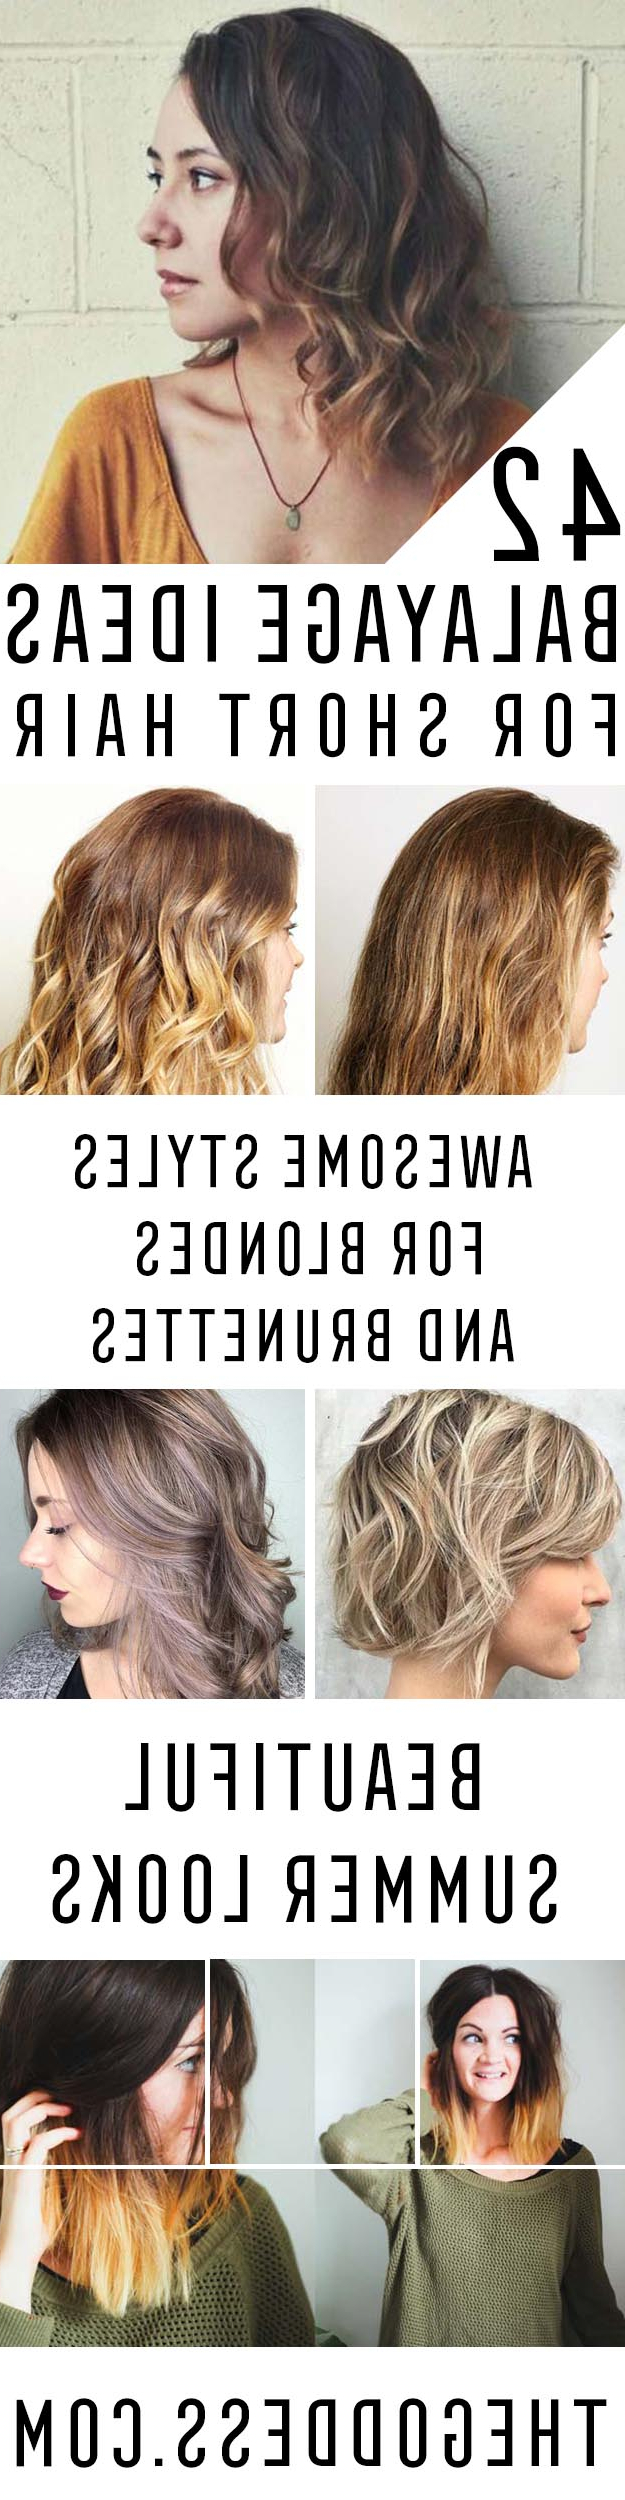 42 Balayage Ideas For Short Hair – The Goddess Throughout Curly Dark Brown Bob Hairstyles With Partial Balayage (View 25 of 25)